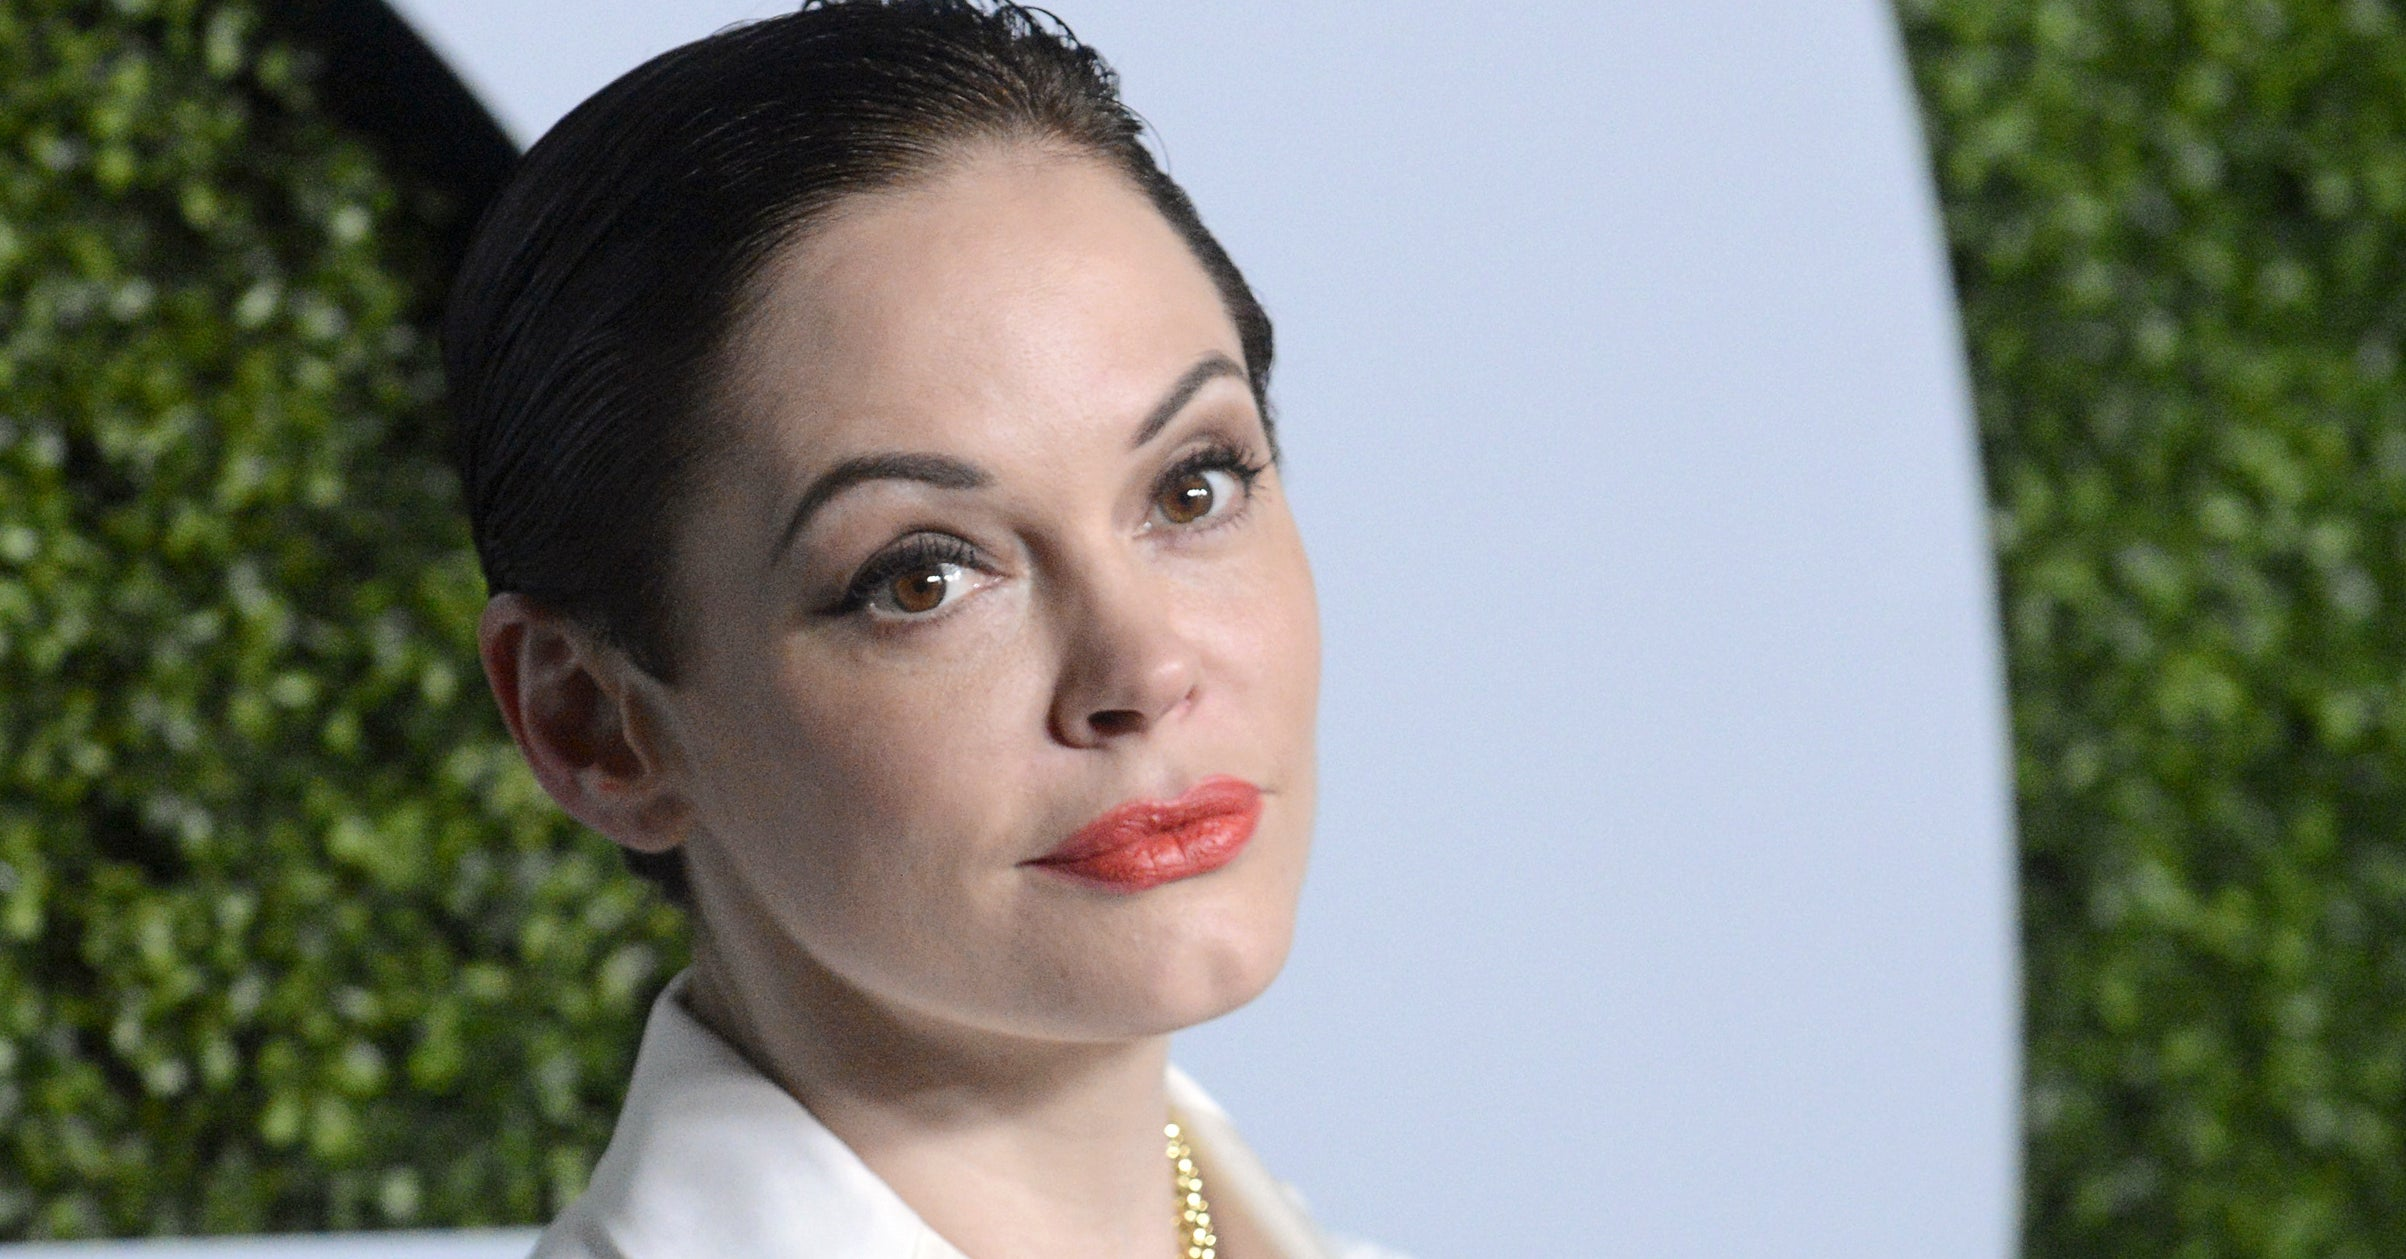 Rose McGowan Says Twitter Suspended Her Account After She Spoke Out About Treatment Of Women In HolyWood